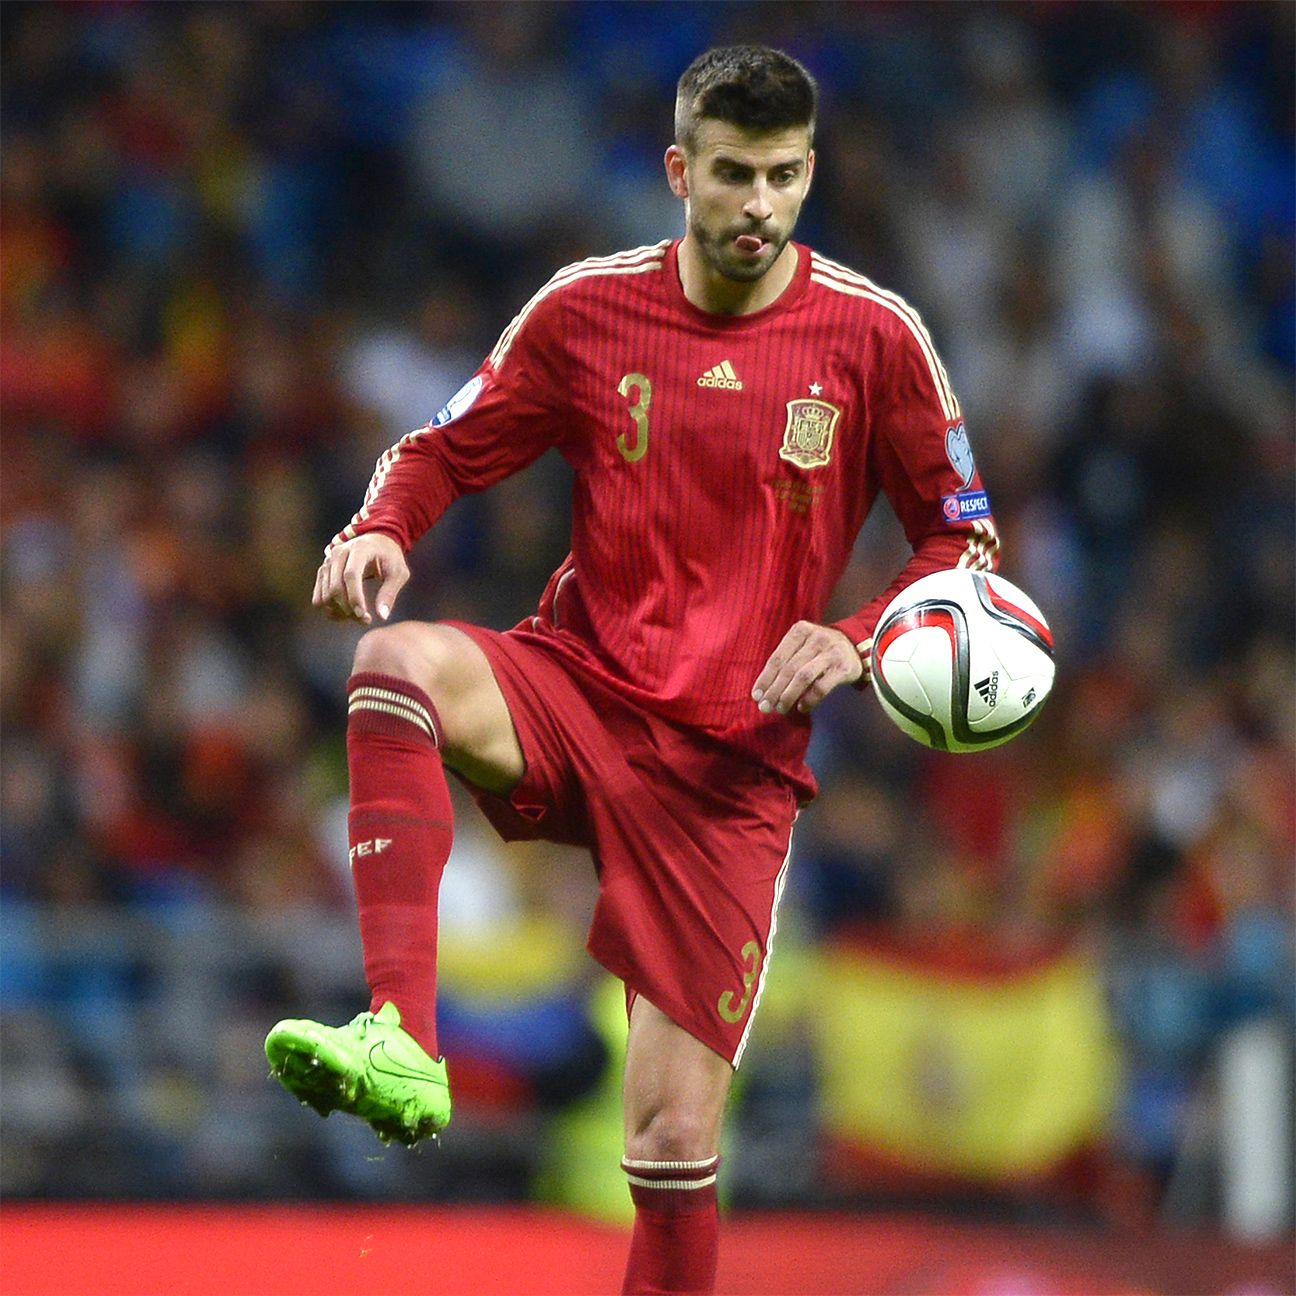 Gerard Pique featured on the Spain teams that took home the 2010 World Cup and Euro 2012.